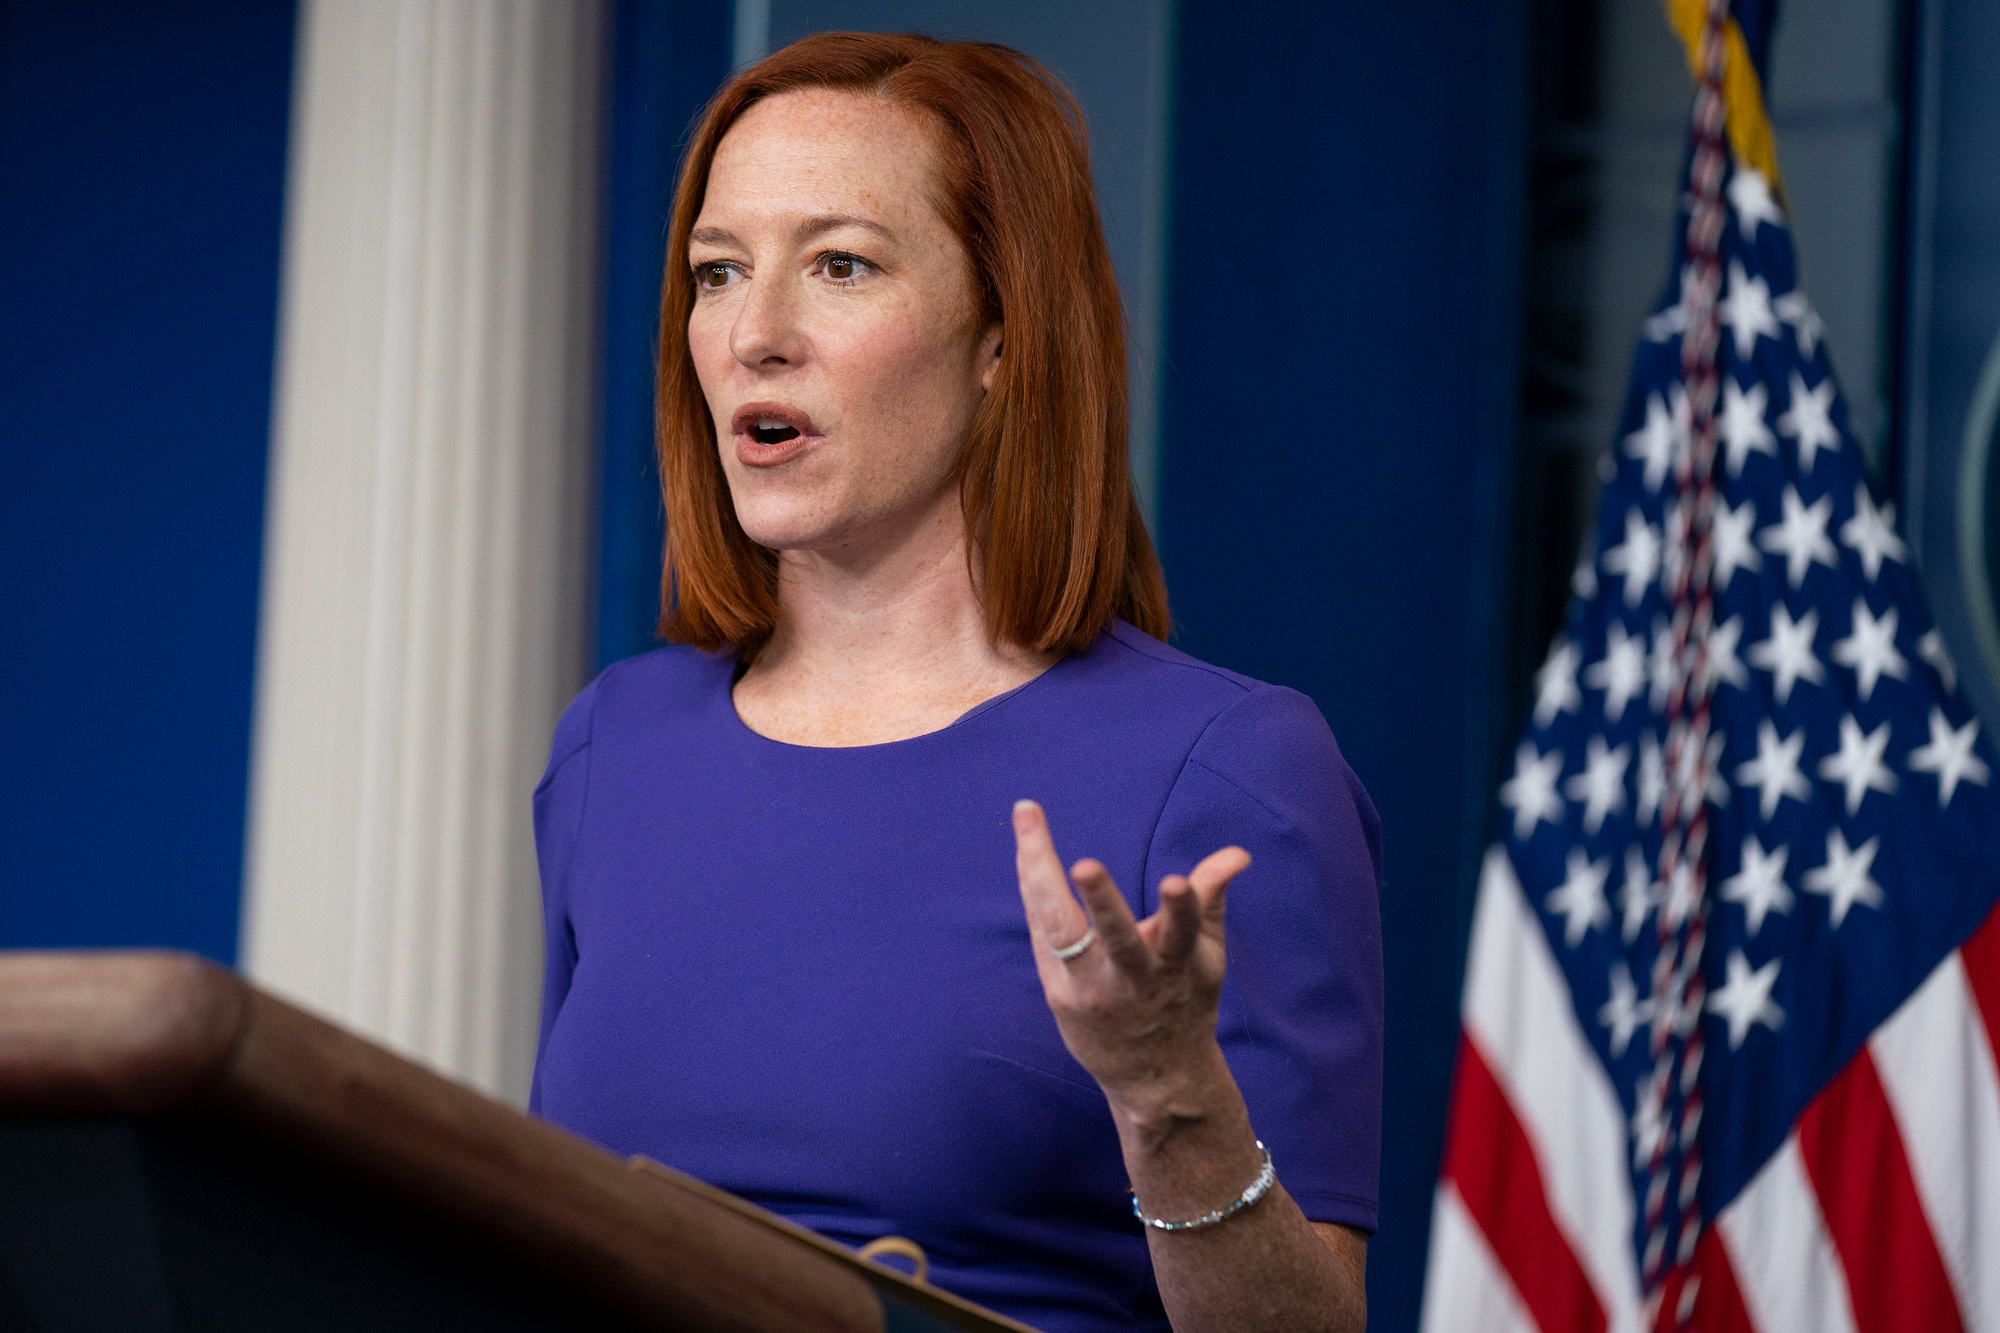 White House press secretary Jen Psaki speaks during a press briefing at the White House on February 24 in Washington, DC.